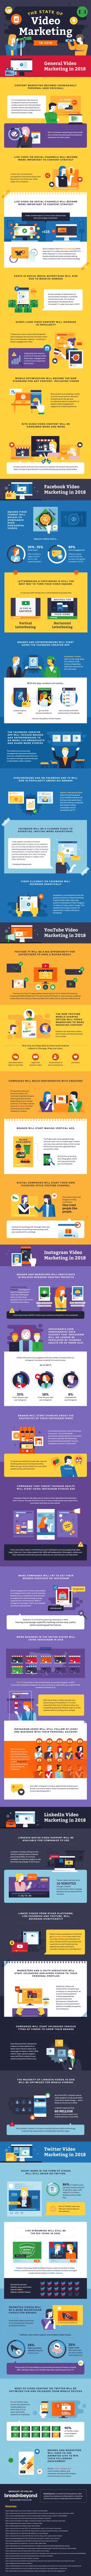 The State of Video Marketing in 2018 - #infographic